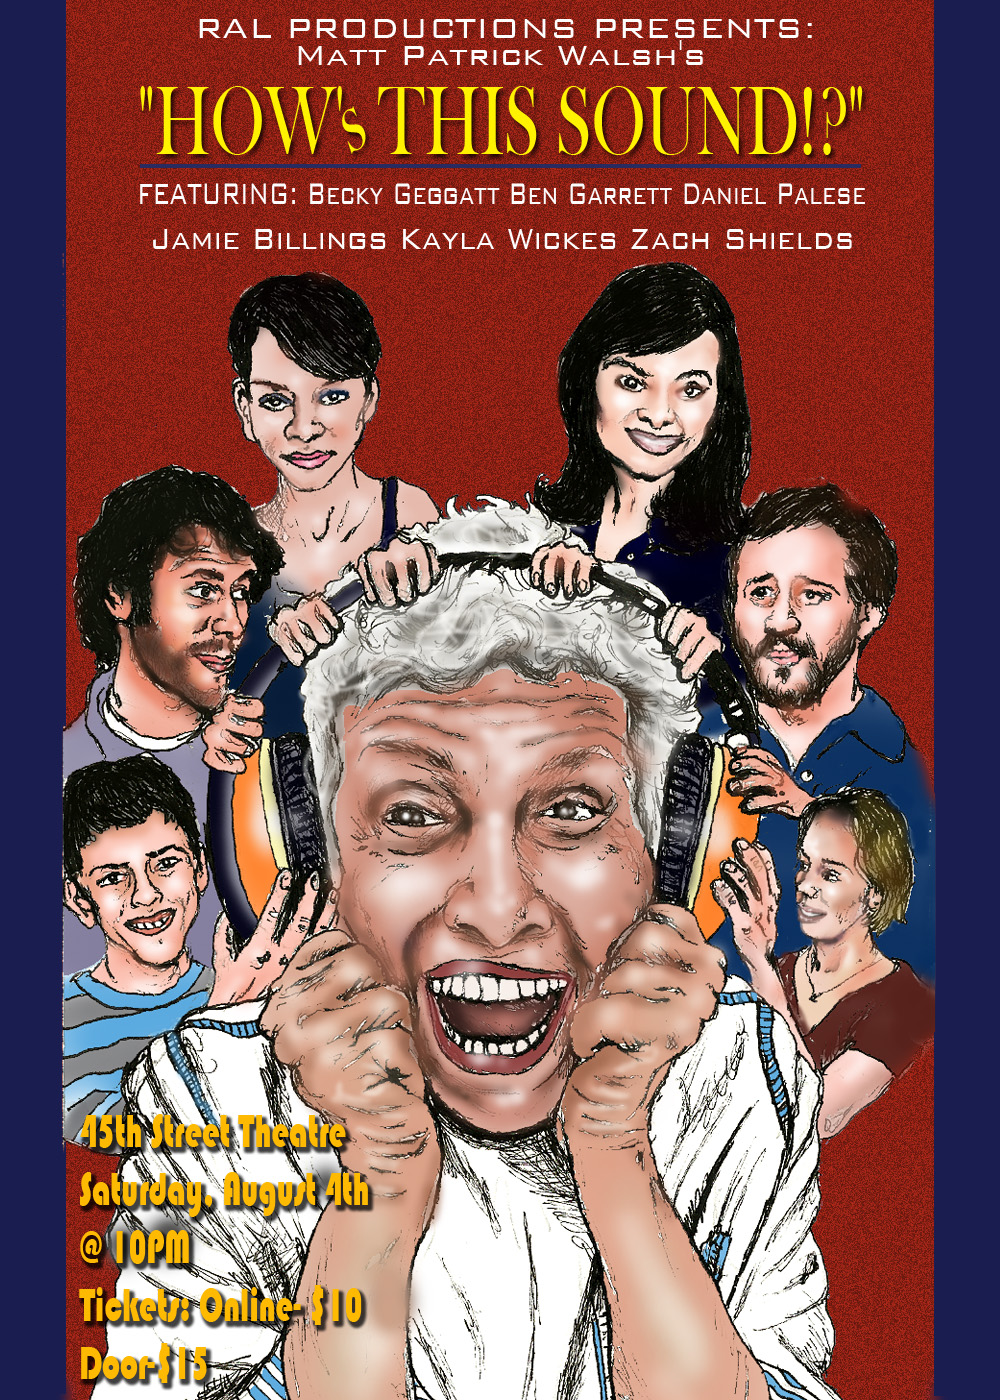 poster(home alone style).jpg